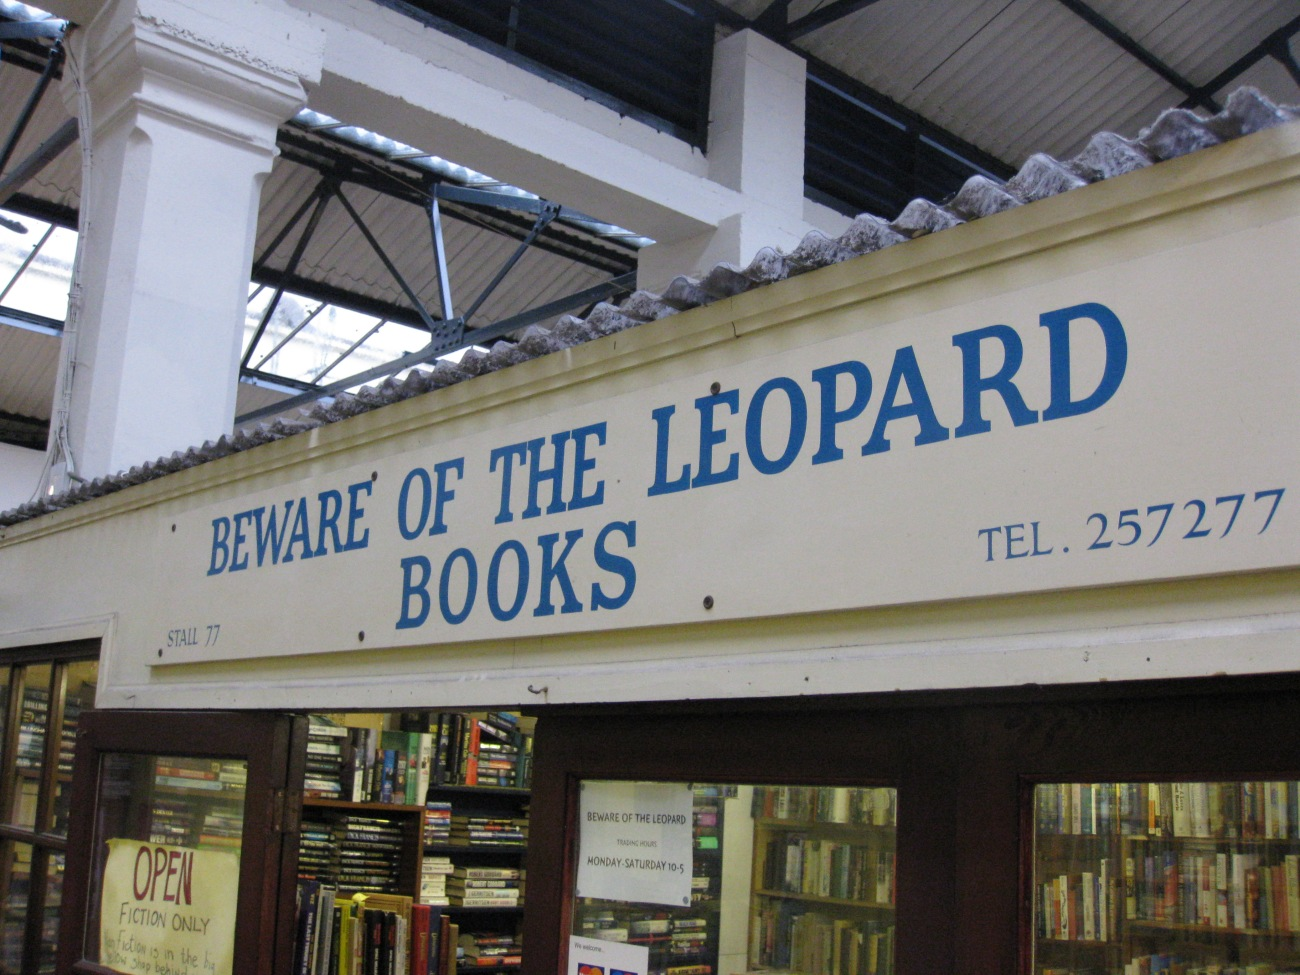 Owen Barritt -  Beware of the leopartd books